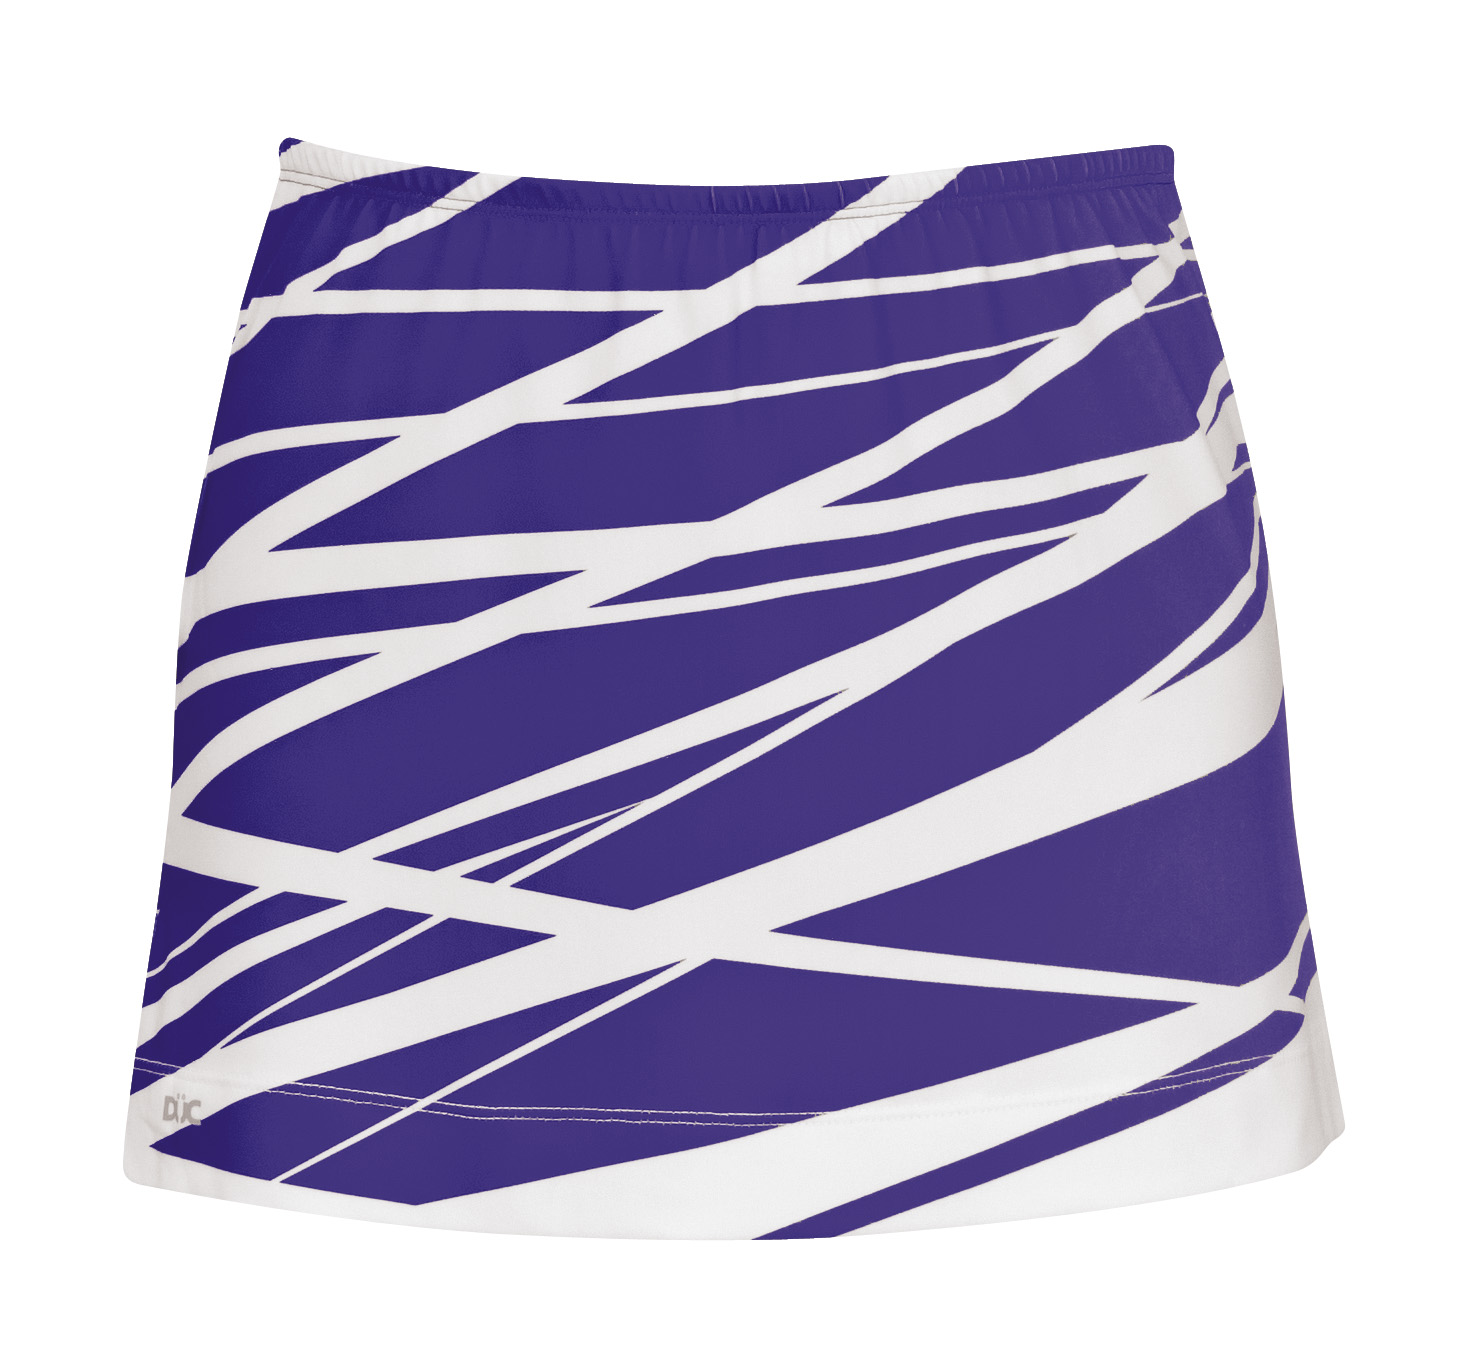 DUC Lightning Reversible Women's Skirt (Purple)